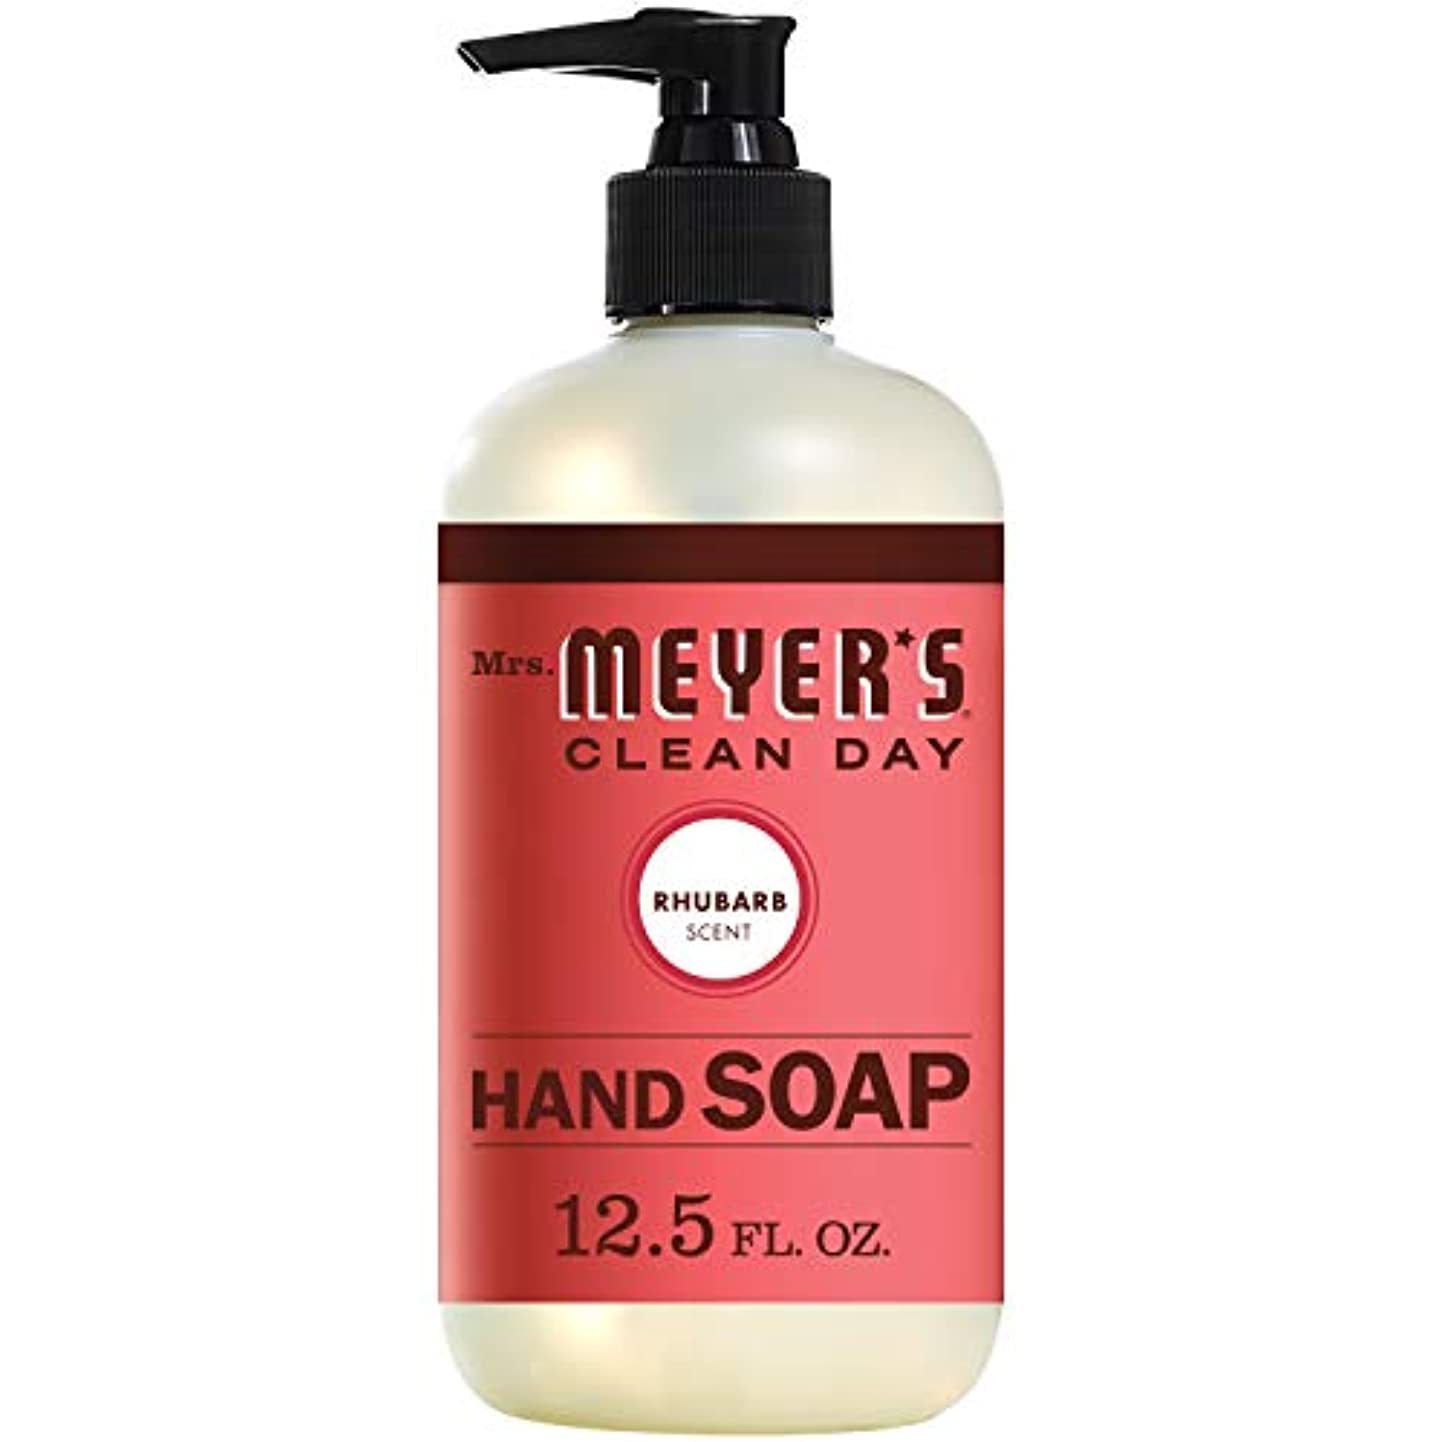 高い入浴アライアンスMrs. Meyers Clean Day, Liquid Hand Soap, Rhubarb Scent, 12.5 fl oz (370 ml)